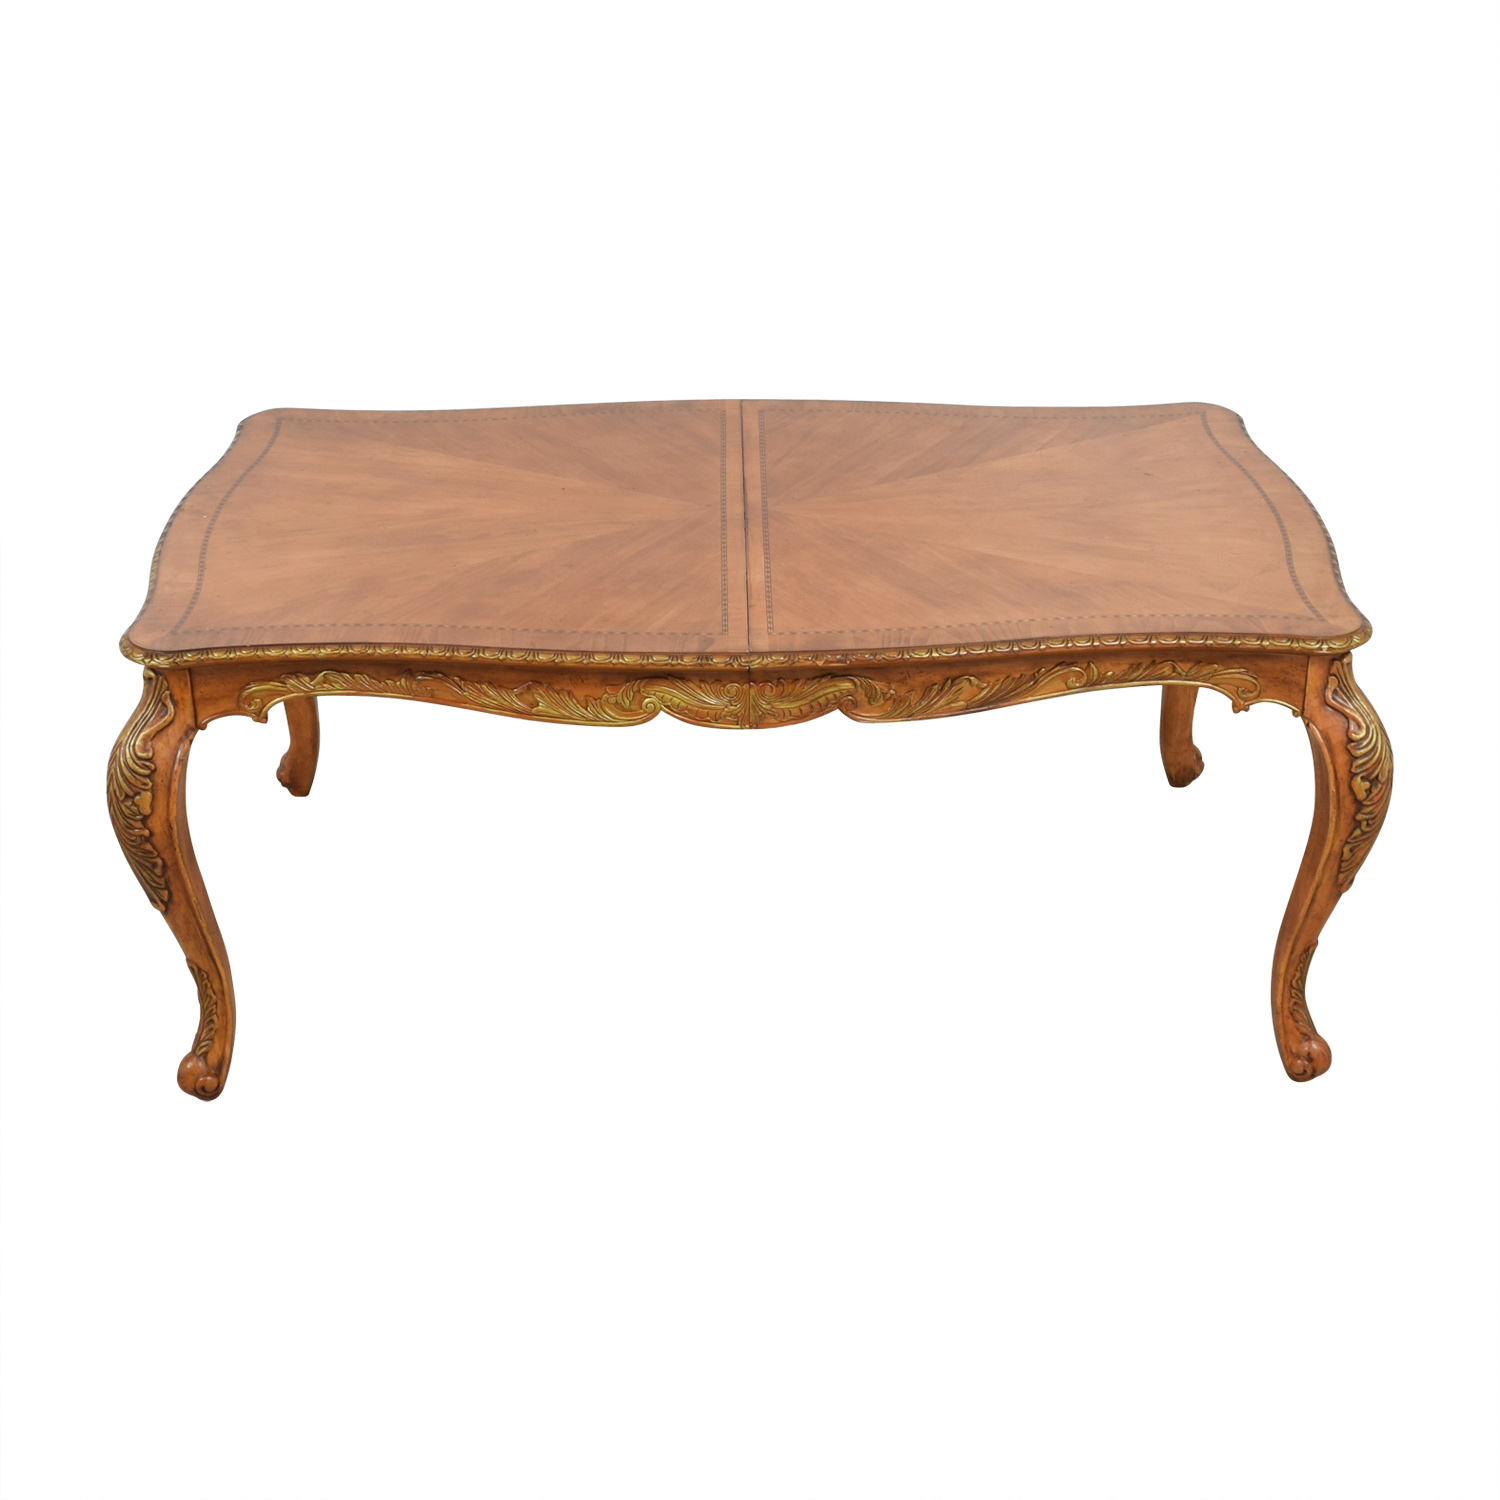 buy  Mid-Century Gold Distressed Wood Dining Table online